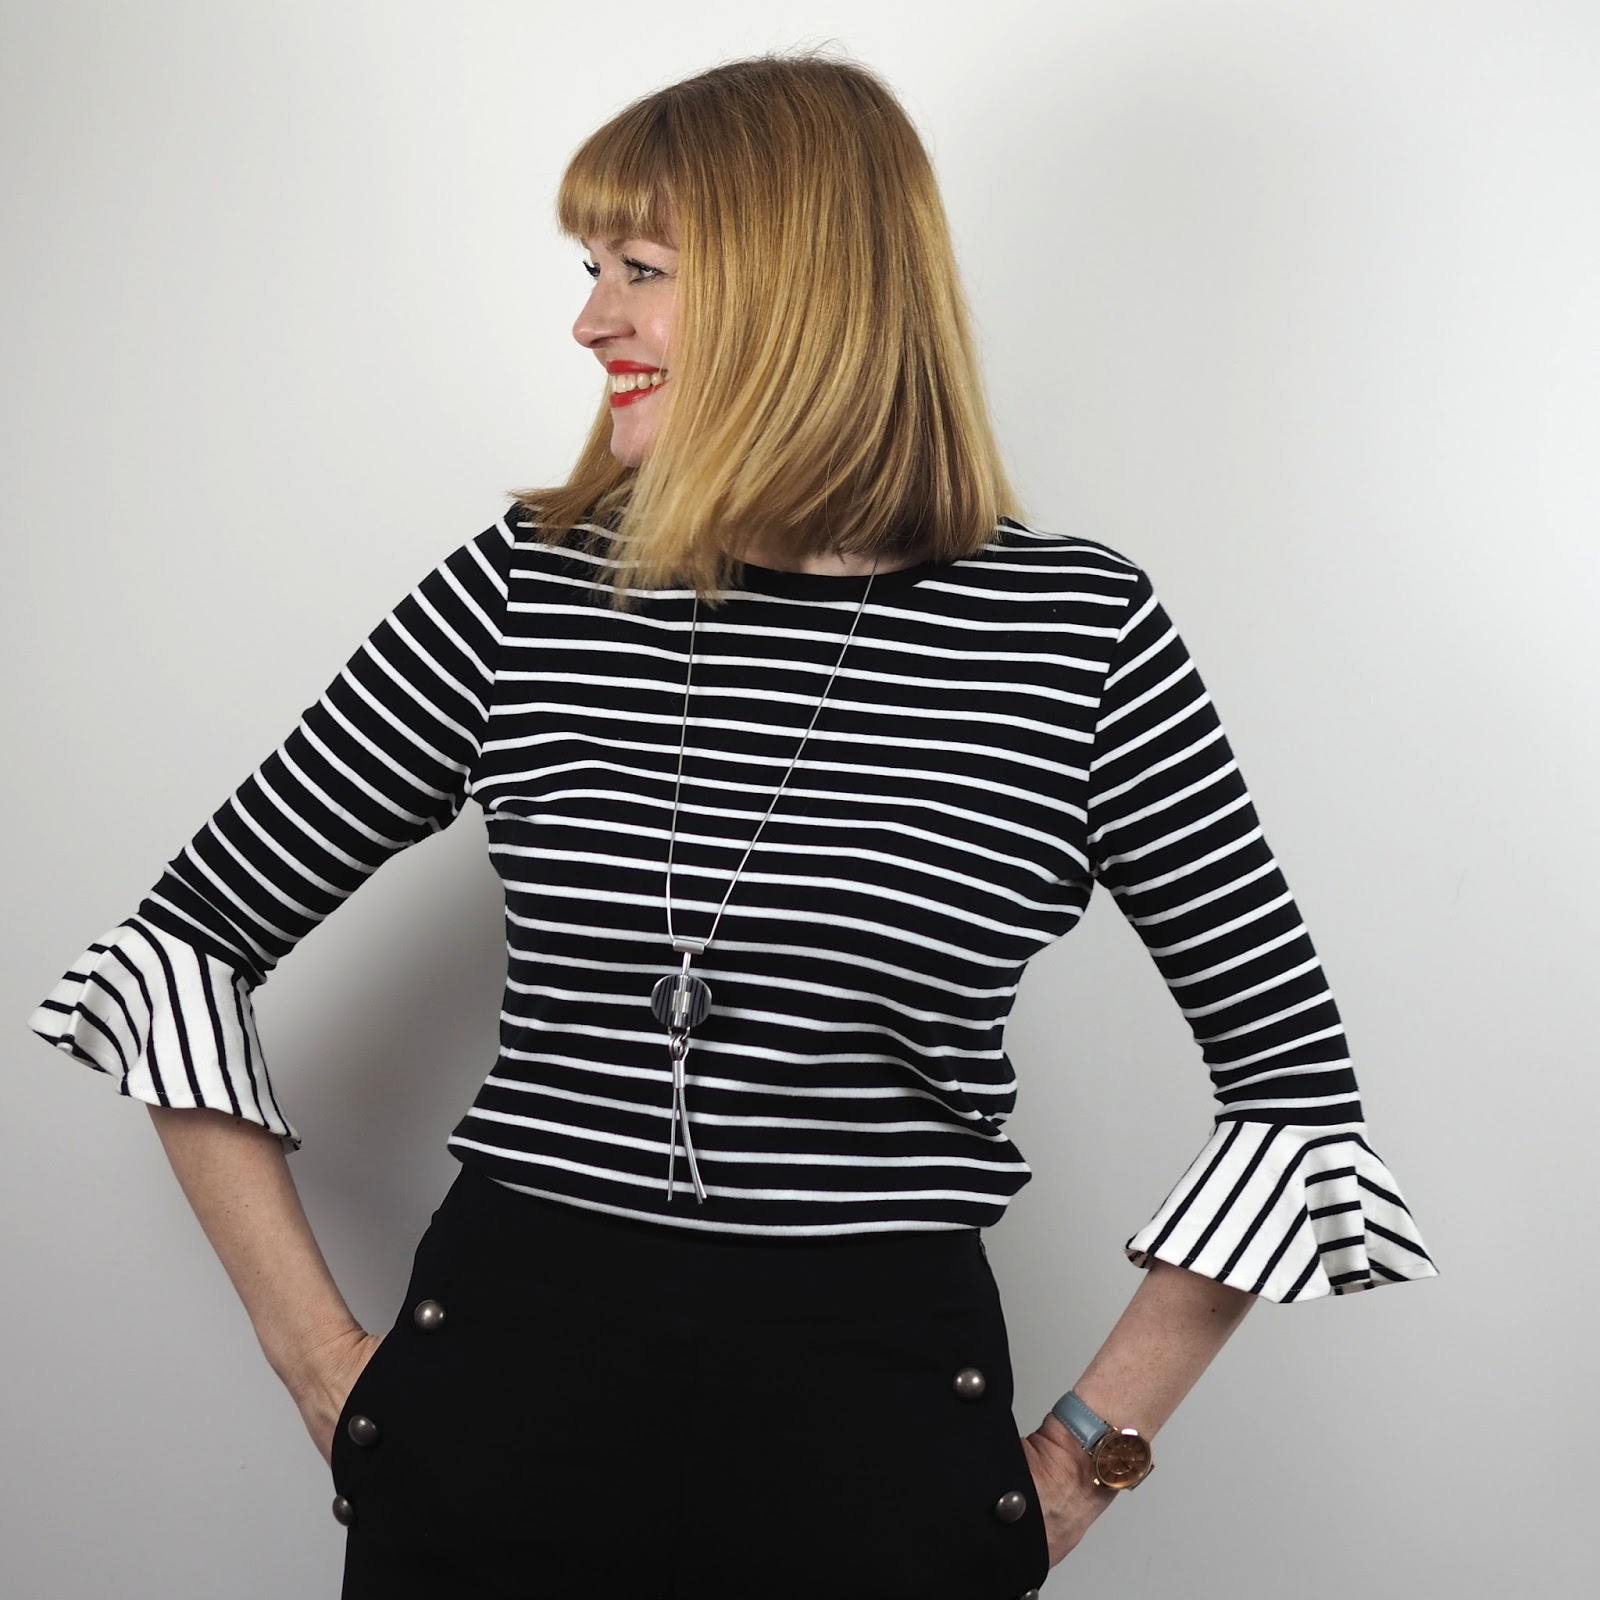 Monochrome striped top with fluted sleeves, wide-legged sailor trousers and hounds tooth leather shoe boots